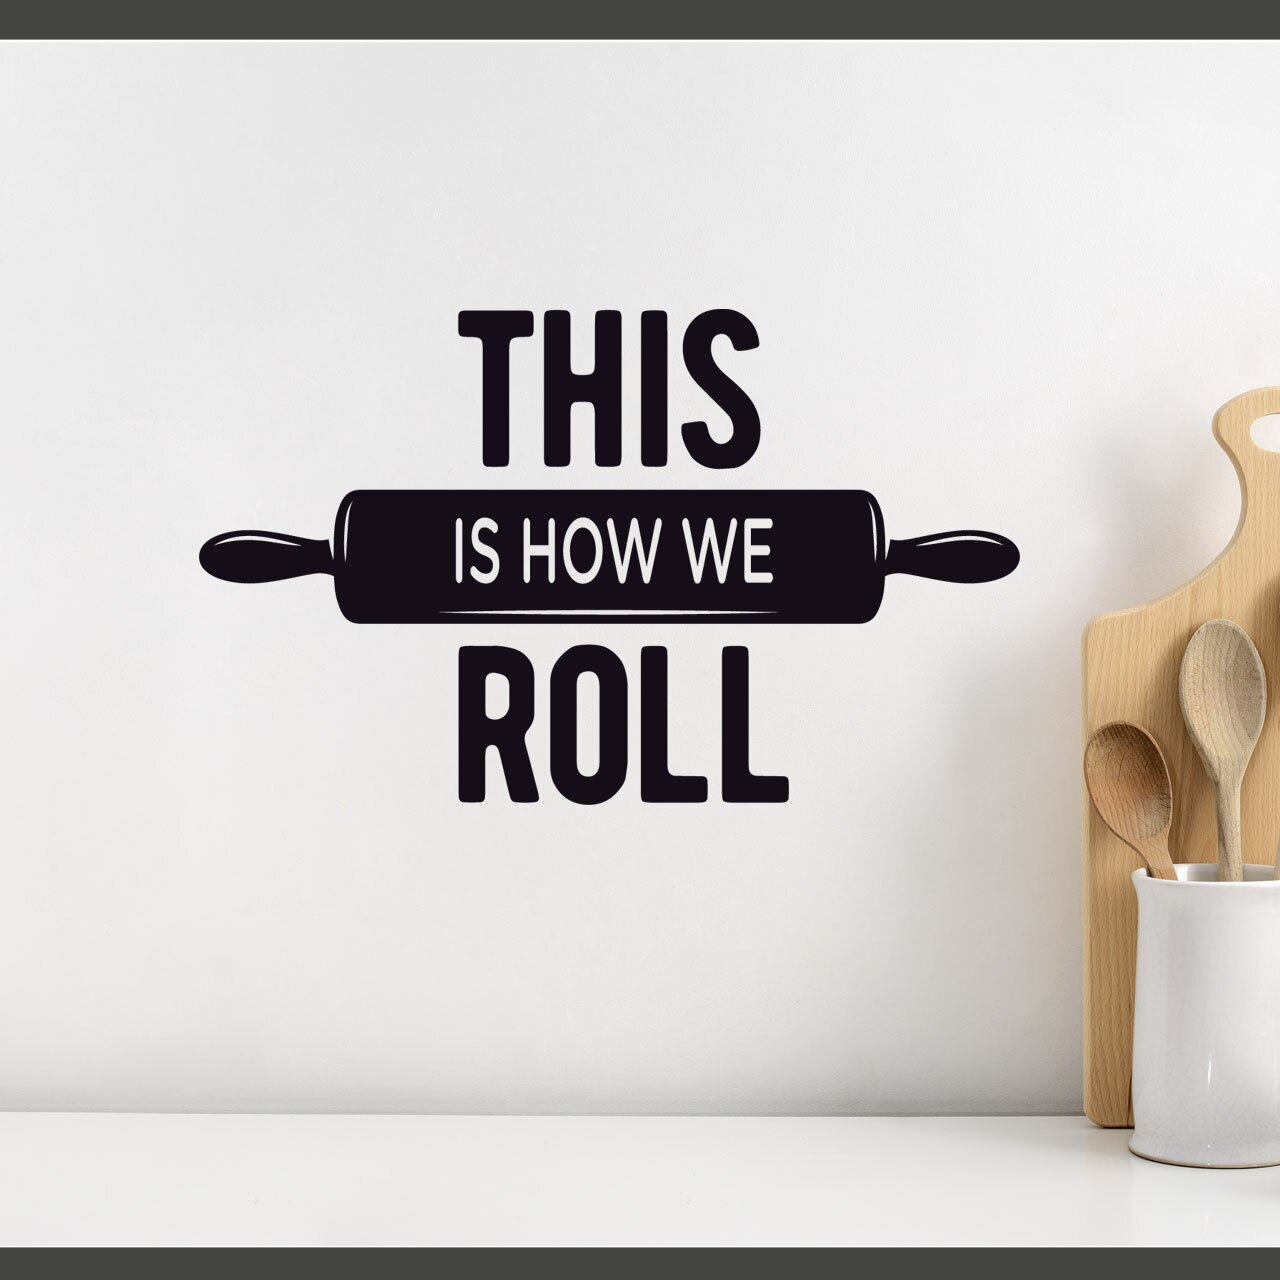 """""""This is how we roll"""" written on 3 lines with a rolling pin on the middle line in black vinyl lettering applied to a white wall over a kitchen counter with some kitchen utensils in a ceramic pot to the right"""